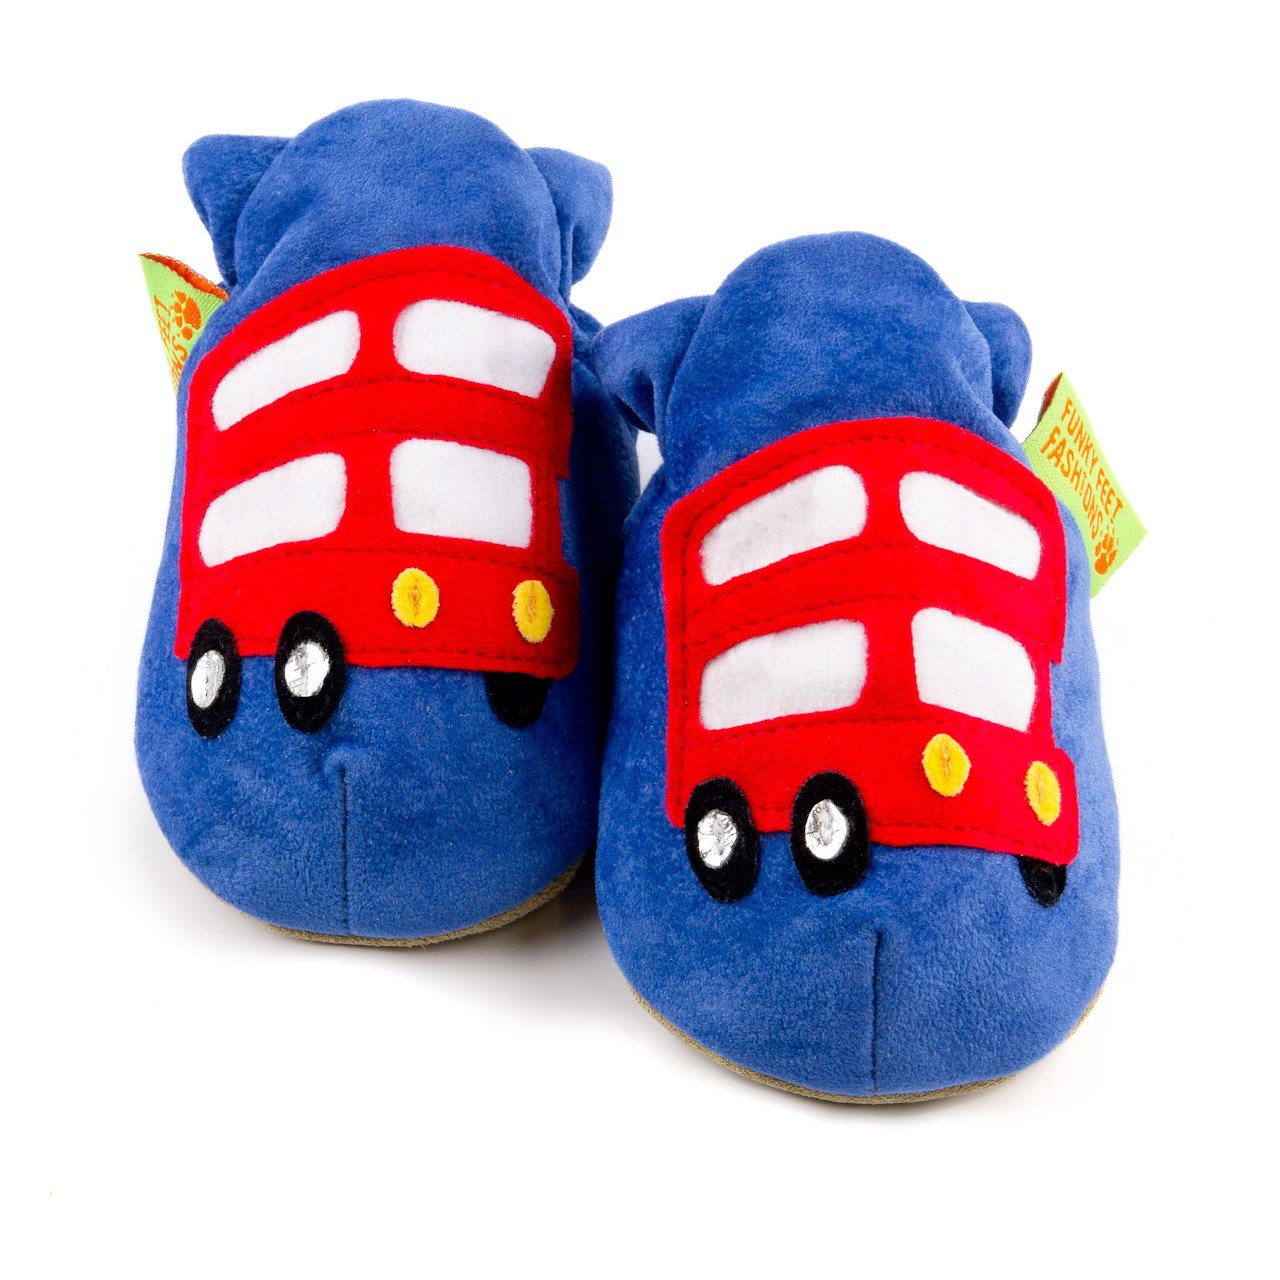 Soft Baby Shoes - London Bus